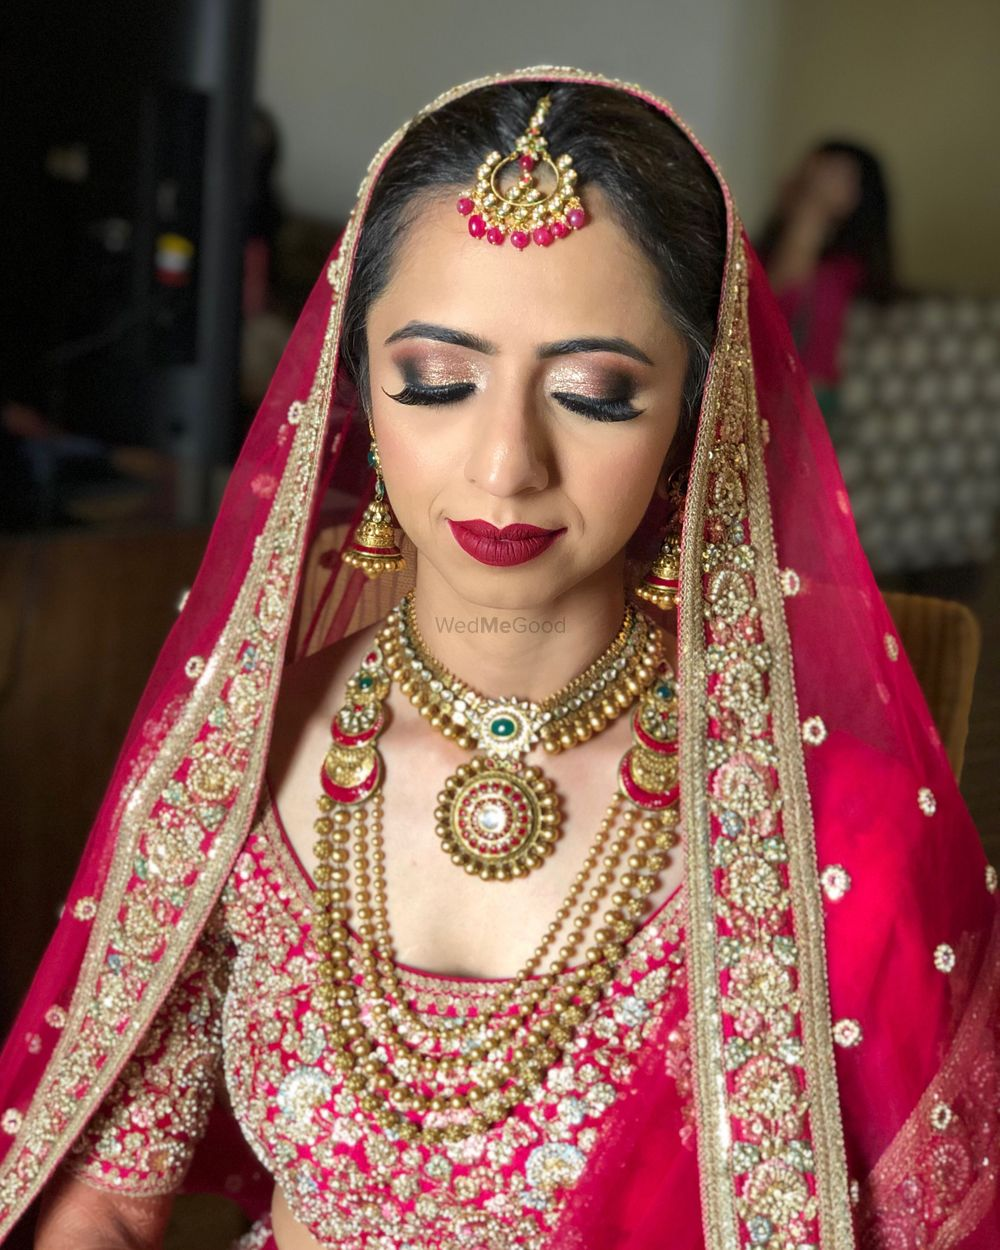 Photo From Sonali  - By Glam by Vrinda